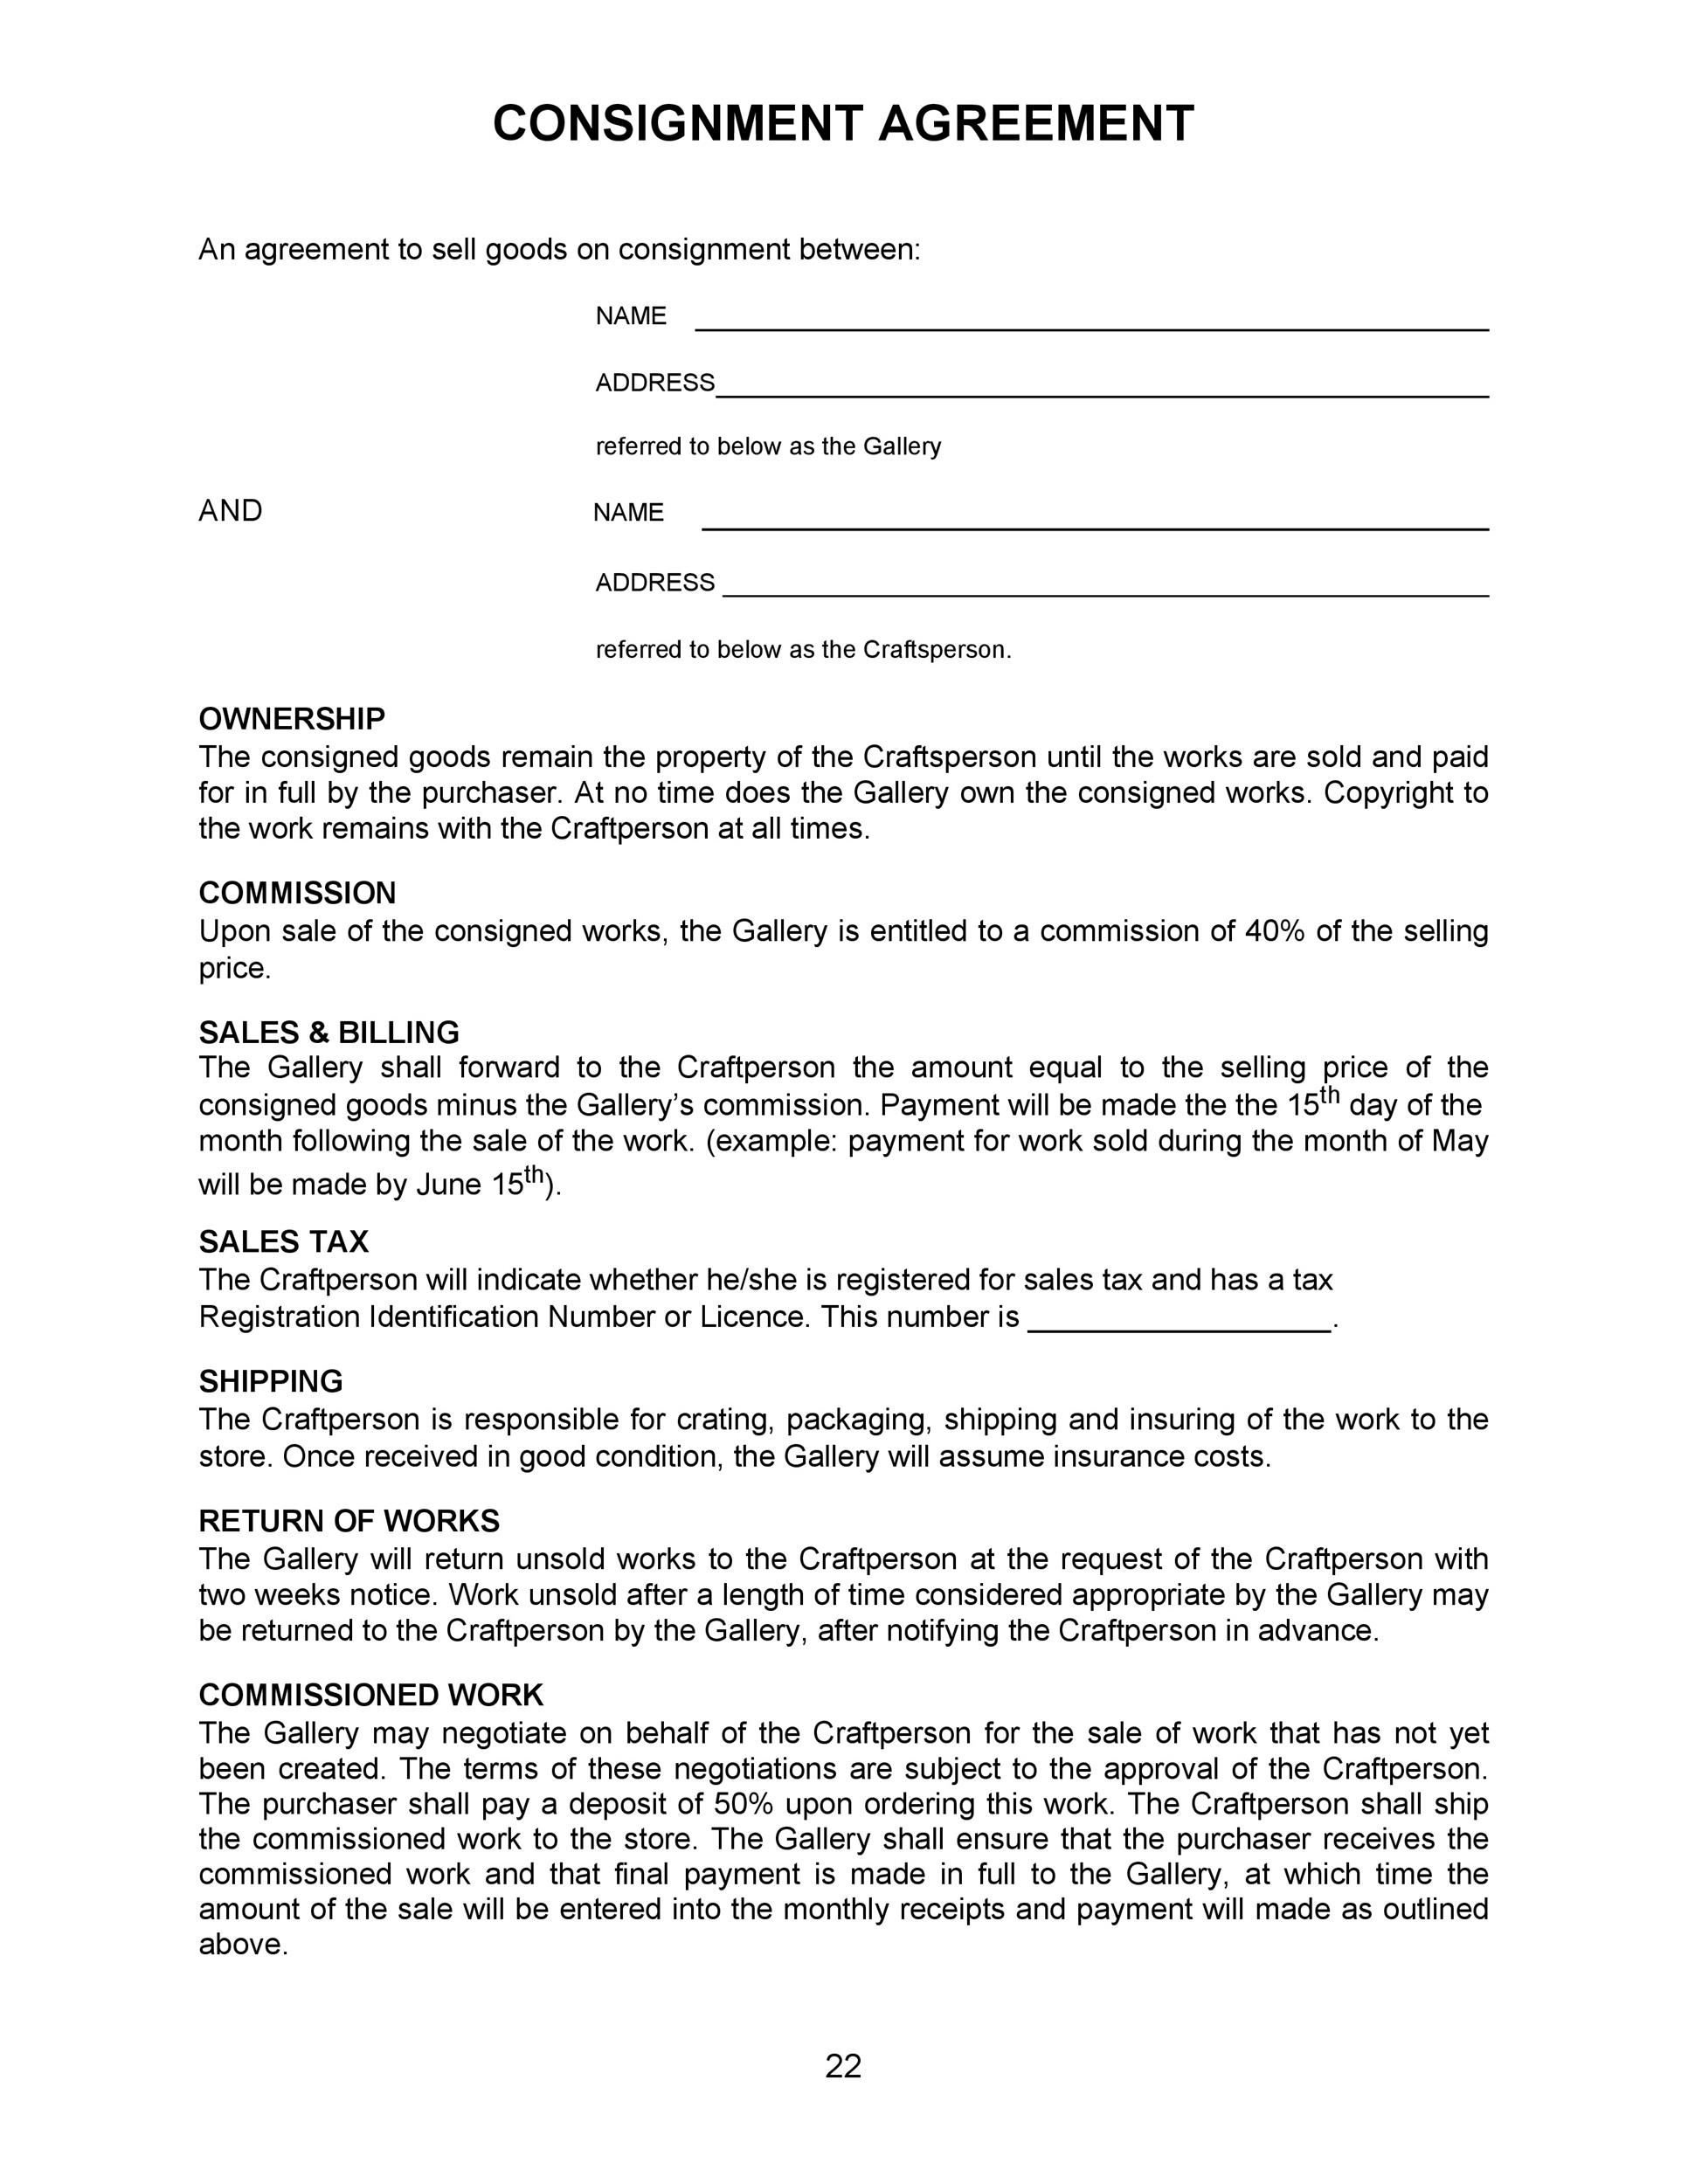 40+ Best Consignment Agreement Templates  Forms - Template Lab - consignment template